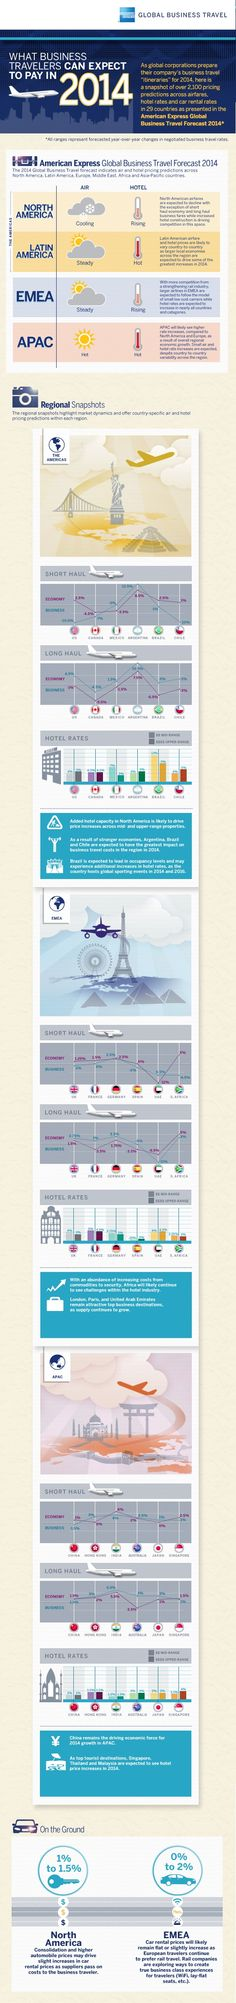 What the business travel community can expect to pay in 2014 - See more at: http://www.tnooz.com/article/business-travel-community-can-expect-pay-2014-infographic/#sthash.FpZvlZI3.dpuf